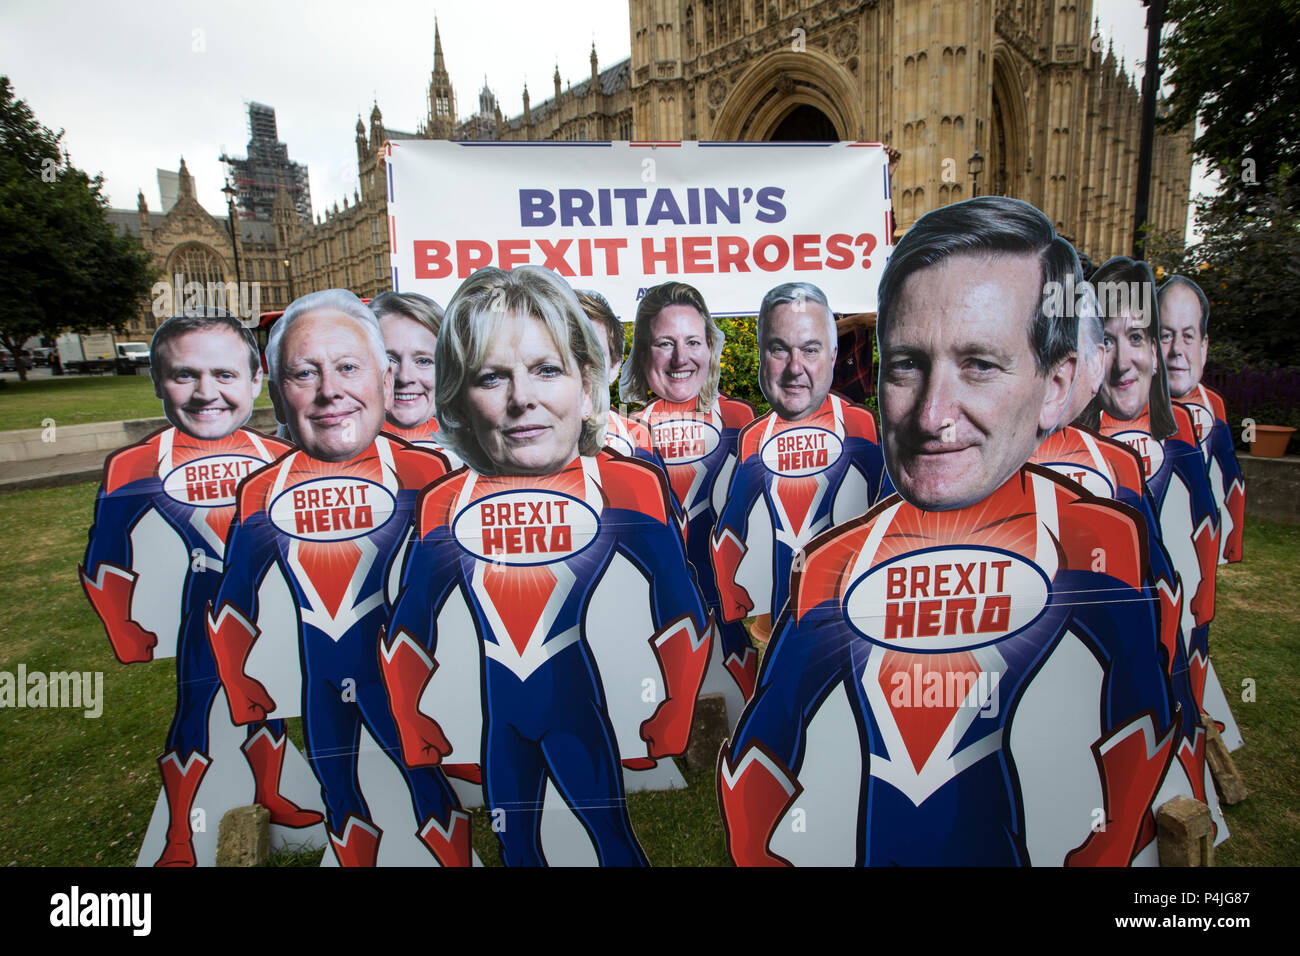 15 superhero cutouts with faces of key Tory rebel MPs outside Parliament ahead of Wednesday's Commons vote to give Parliament a vote on Brexit. Stock Photo